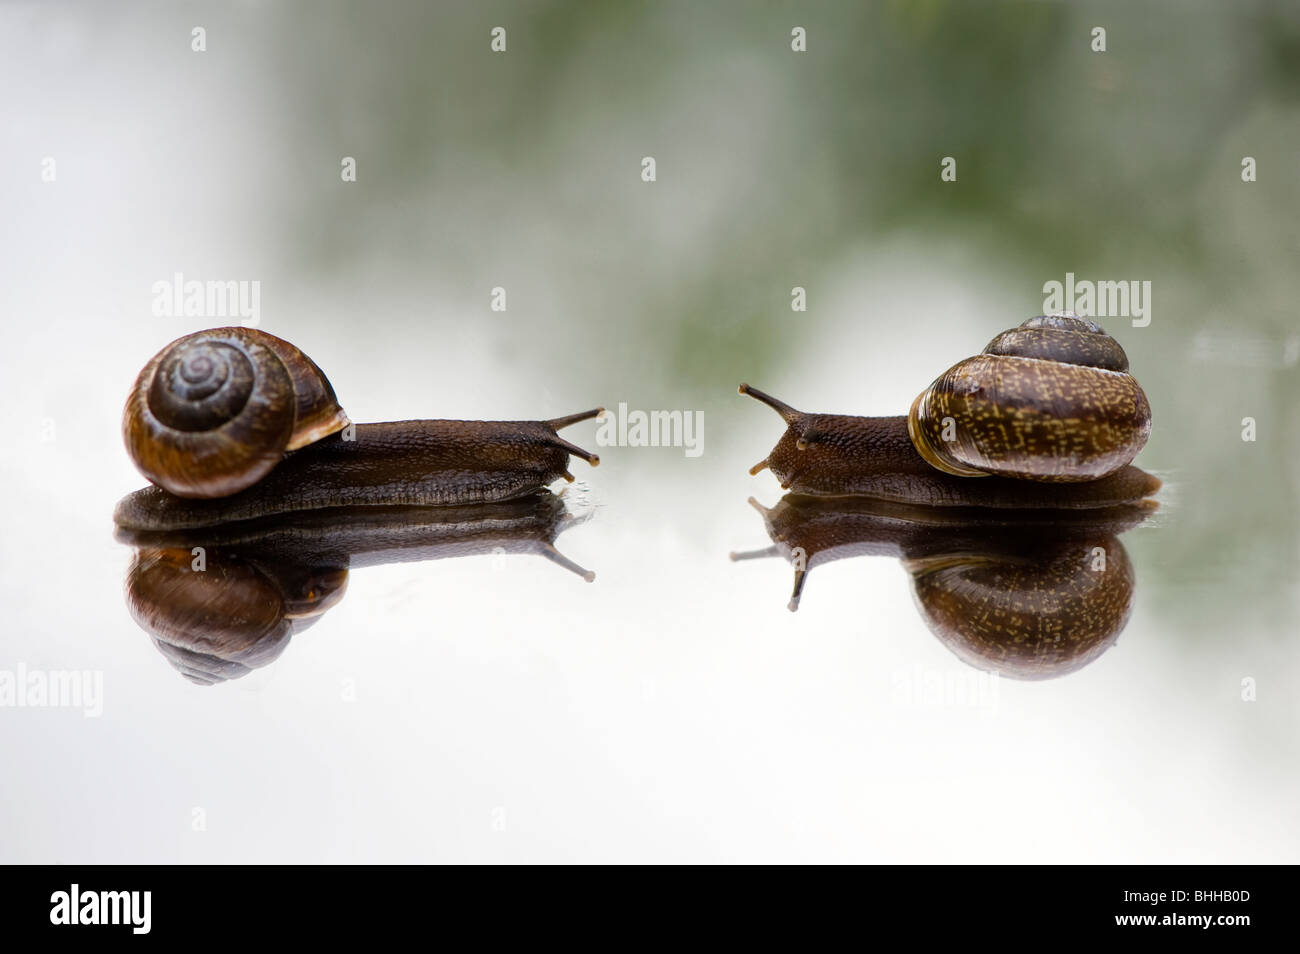 Escargots sur un miroir, close-up, en Suède. Photo Stock